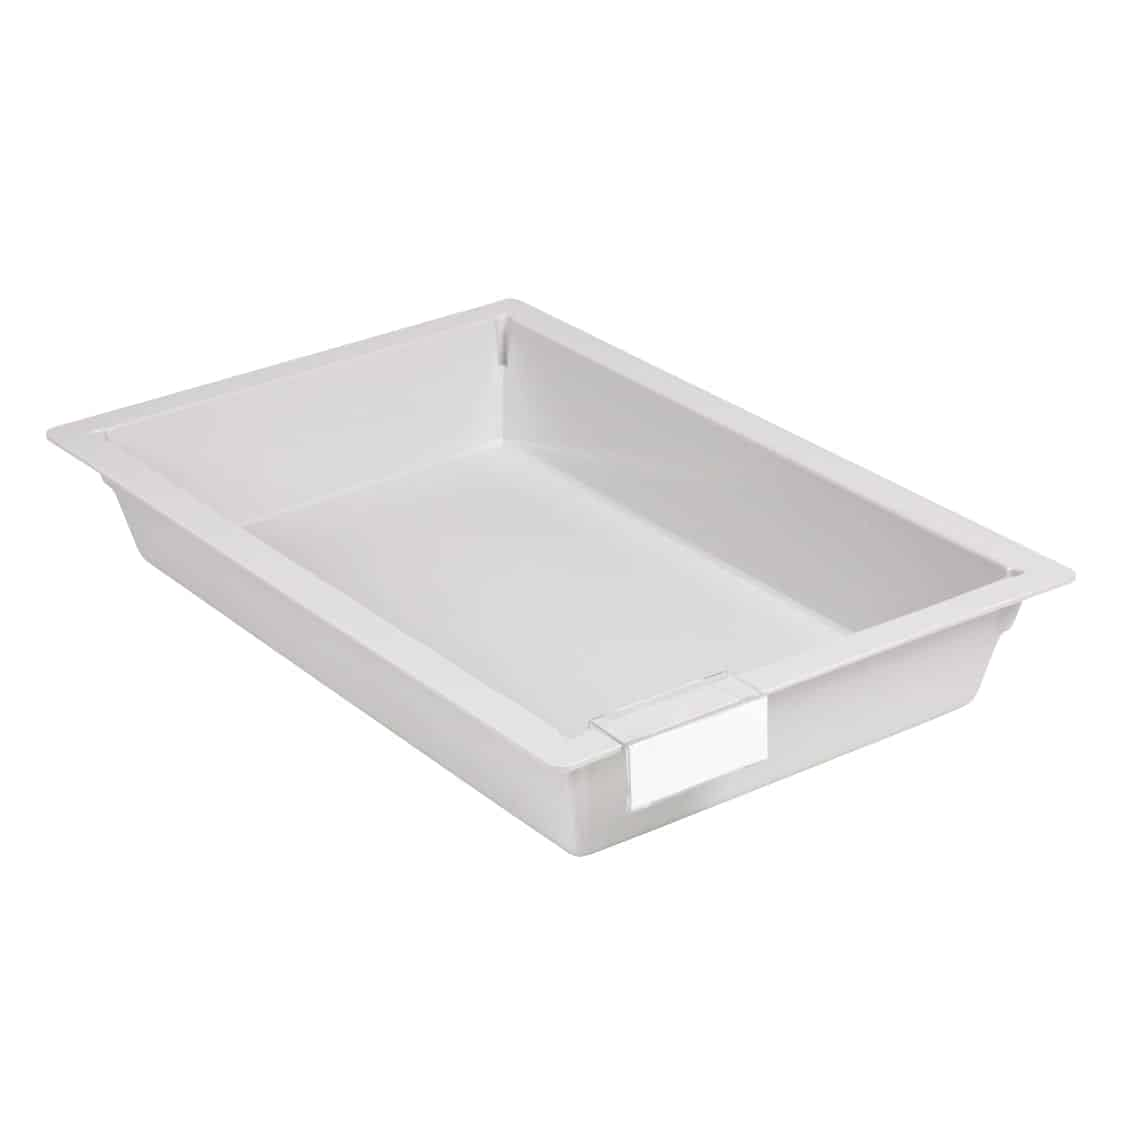 ABS tray (Medium)